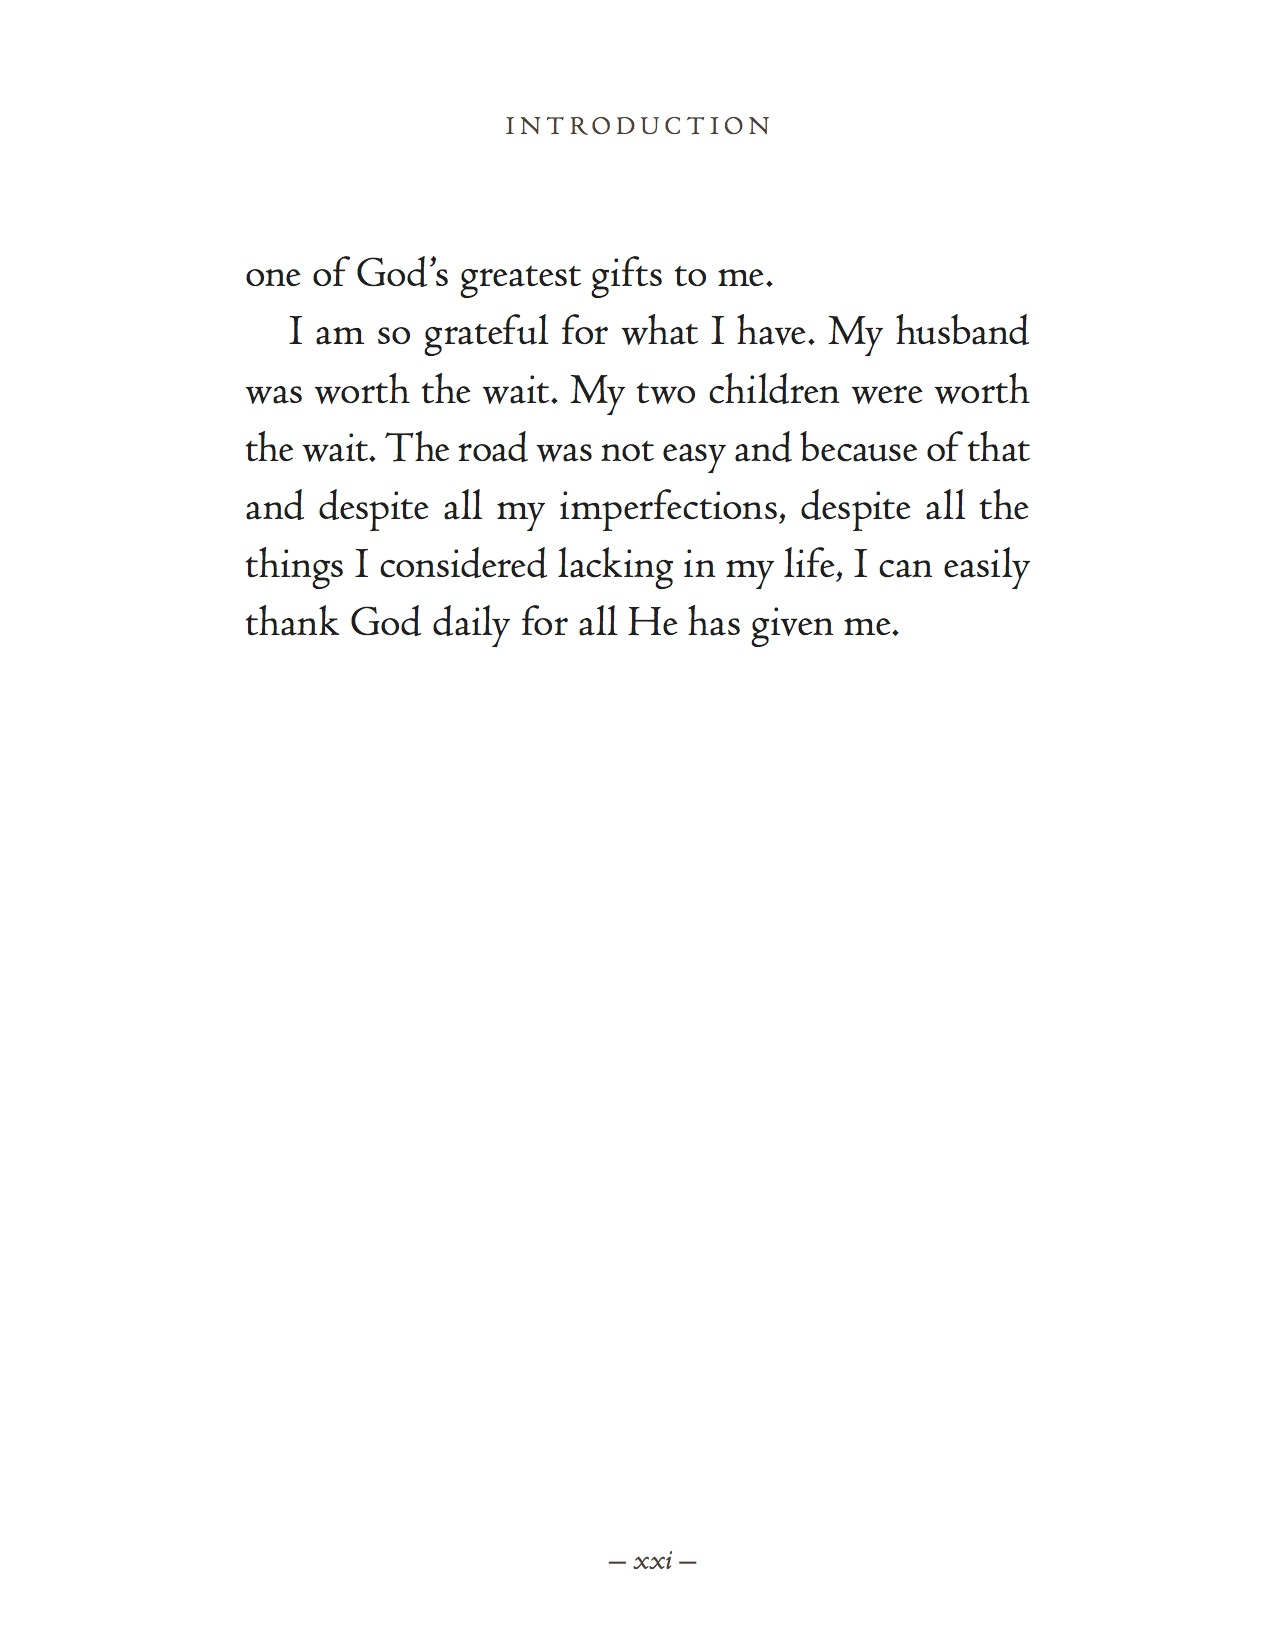 Please God Send me a husband   second part introduction page 12 FINAL version (1).jpg